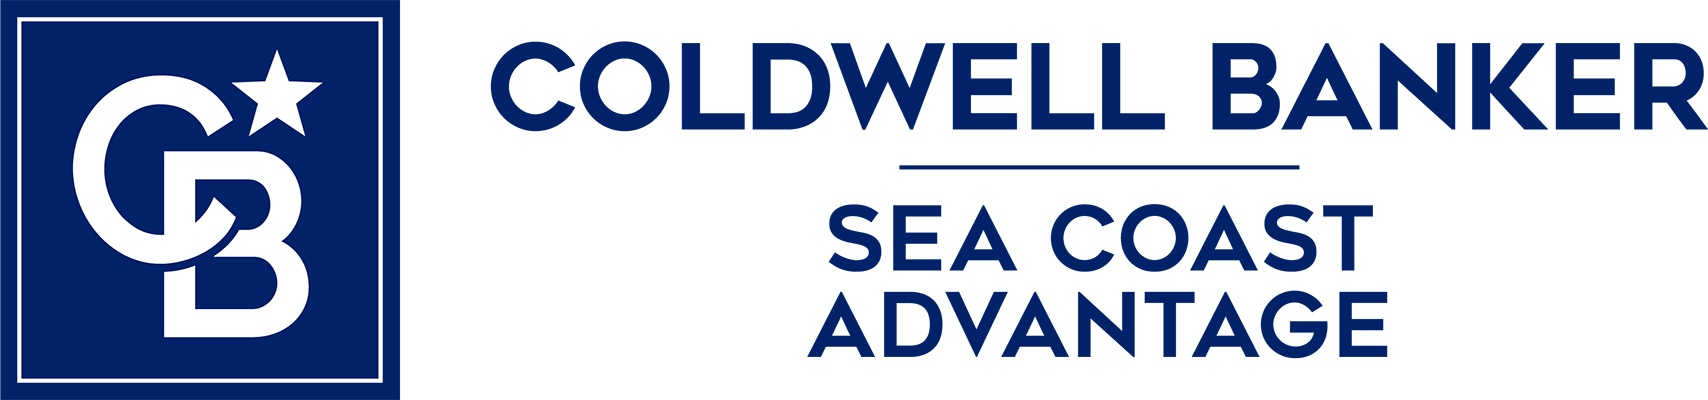 Alex Paen - Coldwell Banker Sea Coast Advantage Realty